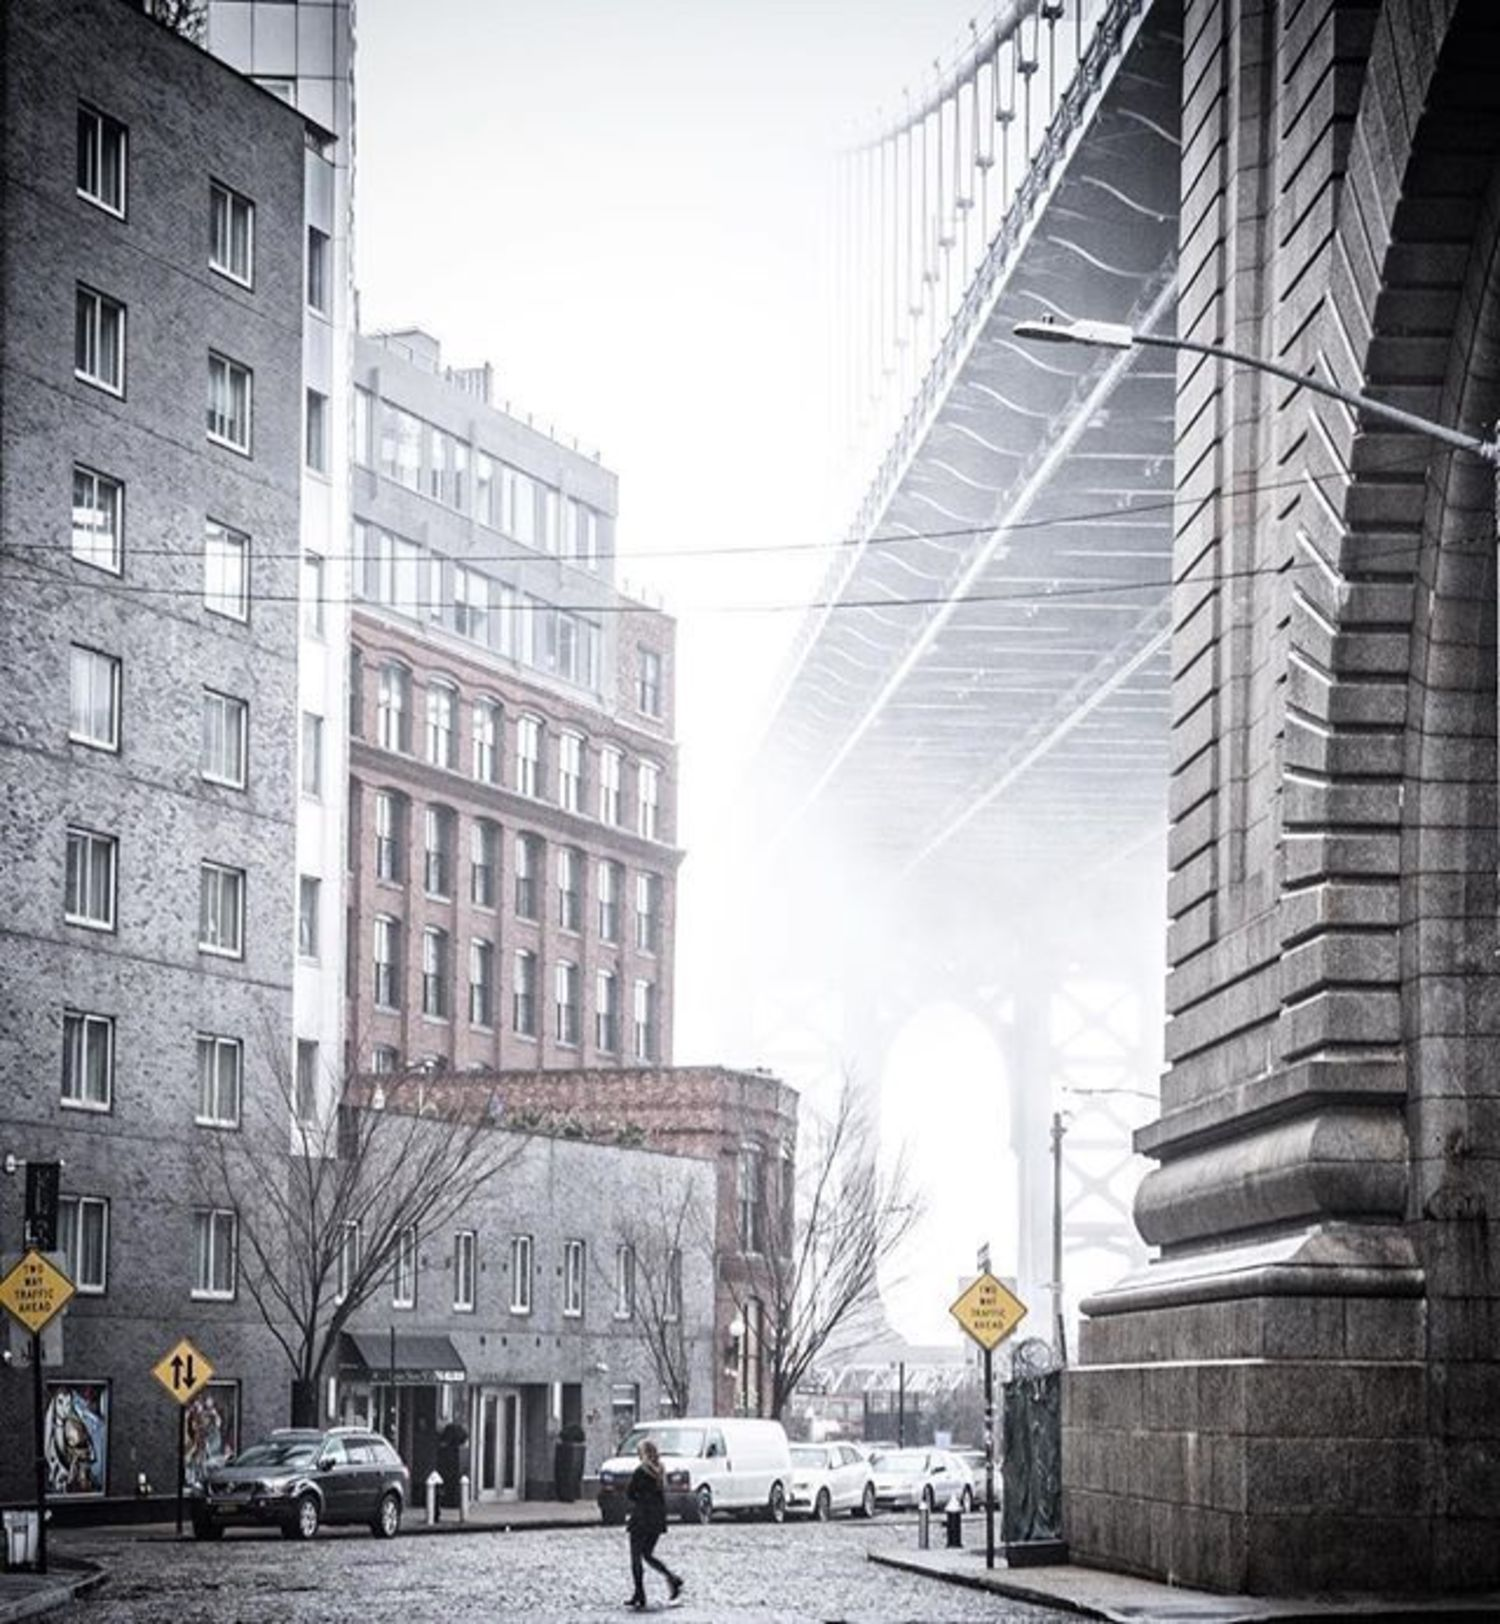 Dumbo, Brooklyn. Photo via @bklyn_block #viewingnyc #newyork #newyorkcity #nyc #manhattanbridge #dumbo